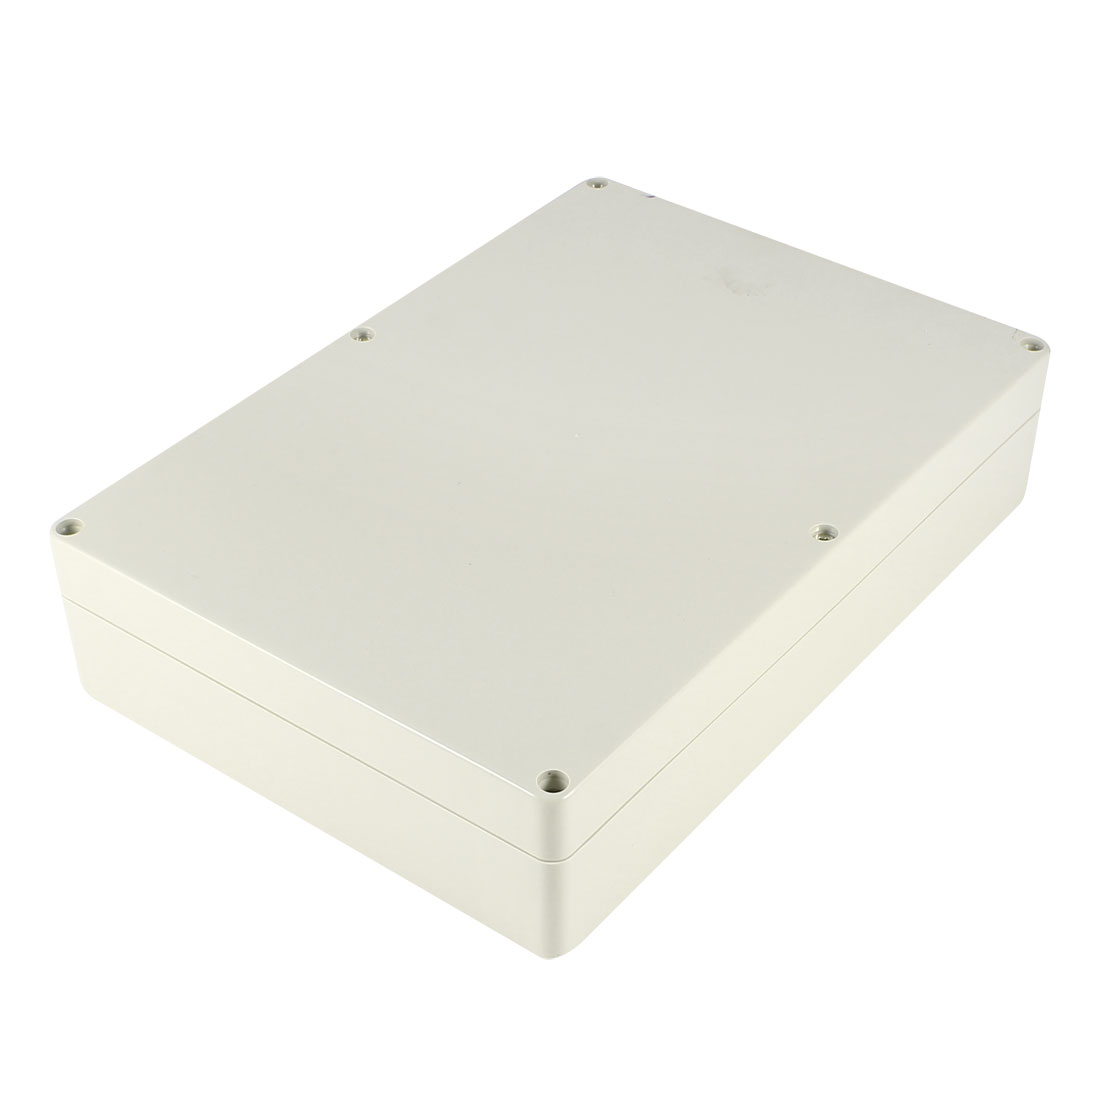 265mmx185mmx60mm-Rectangle-Shaped-Waterproof-Plastic-Switch-Junction-Box